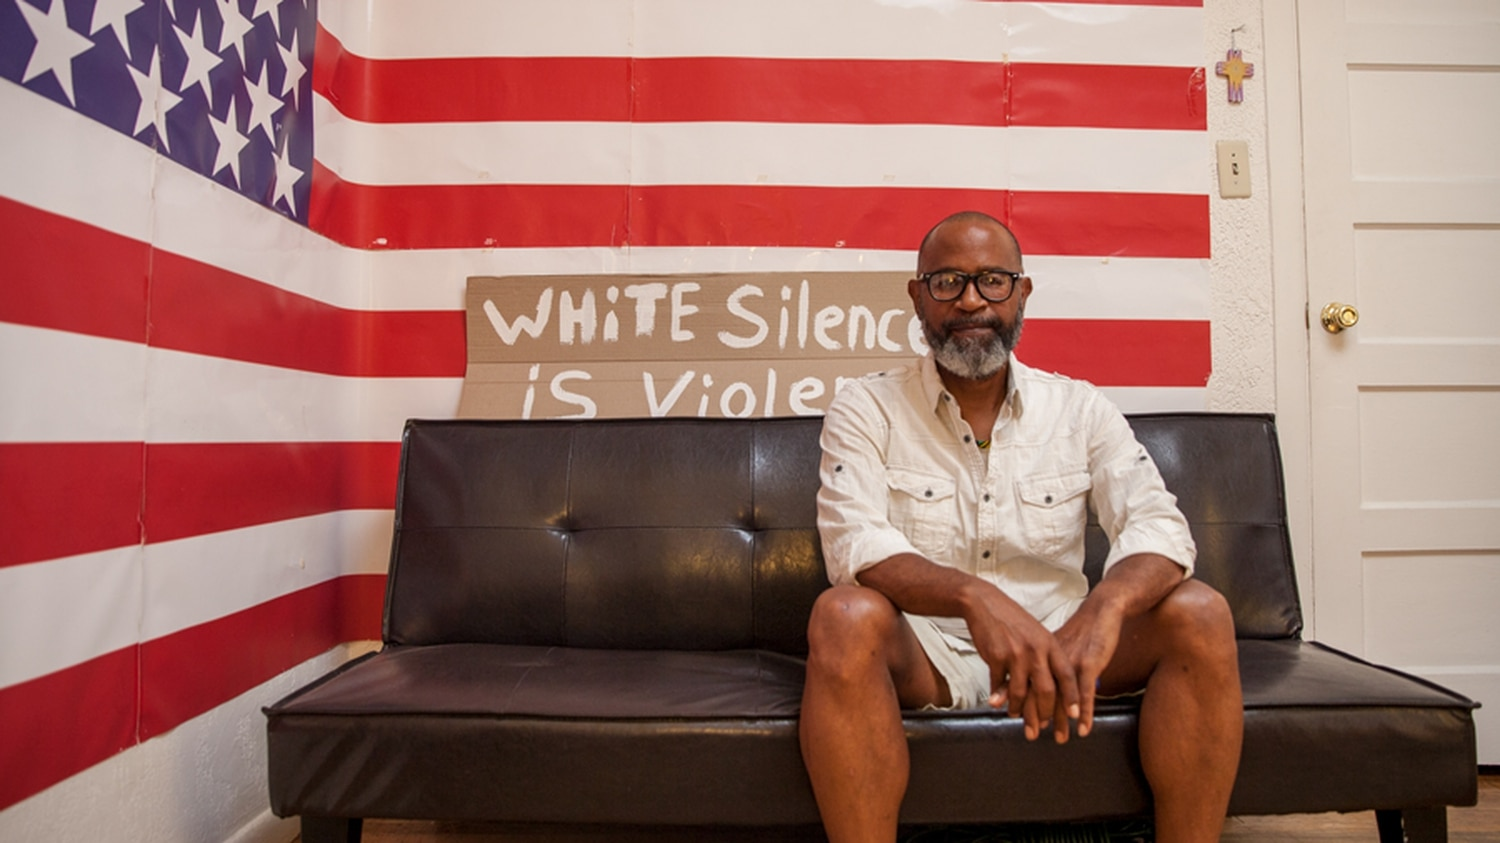 Loveless Johnson III, pictured at his home office and podcast studio, says the nascent NMJA will work across spectrums on a variety of issues. A Plaza rally is planned Saturday, June 20 at noon.